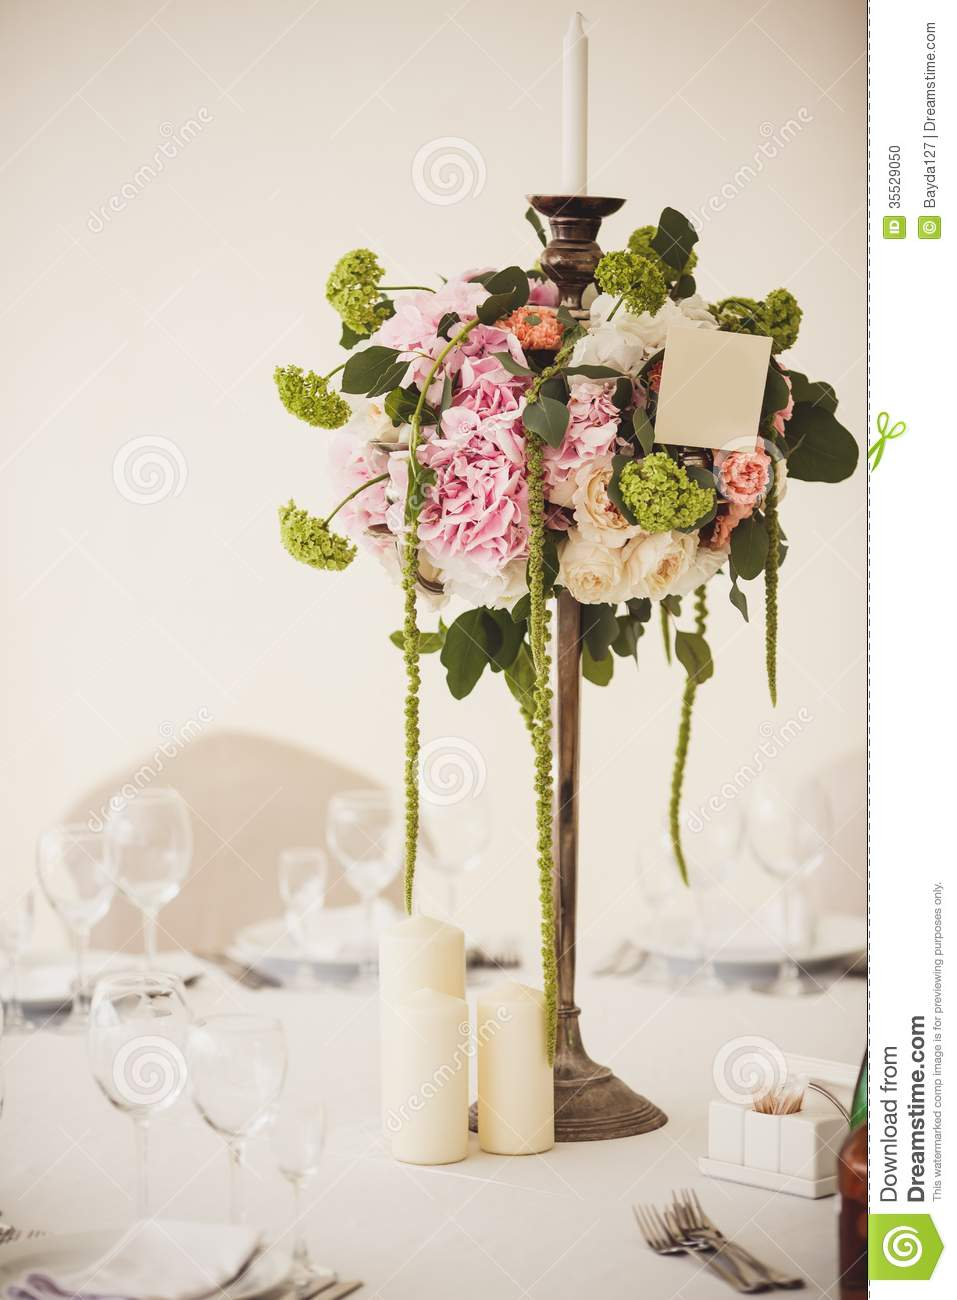 Decoration of wedding flowers stock photo image 35529050 for Wedding interior decoration images